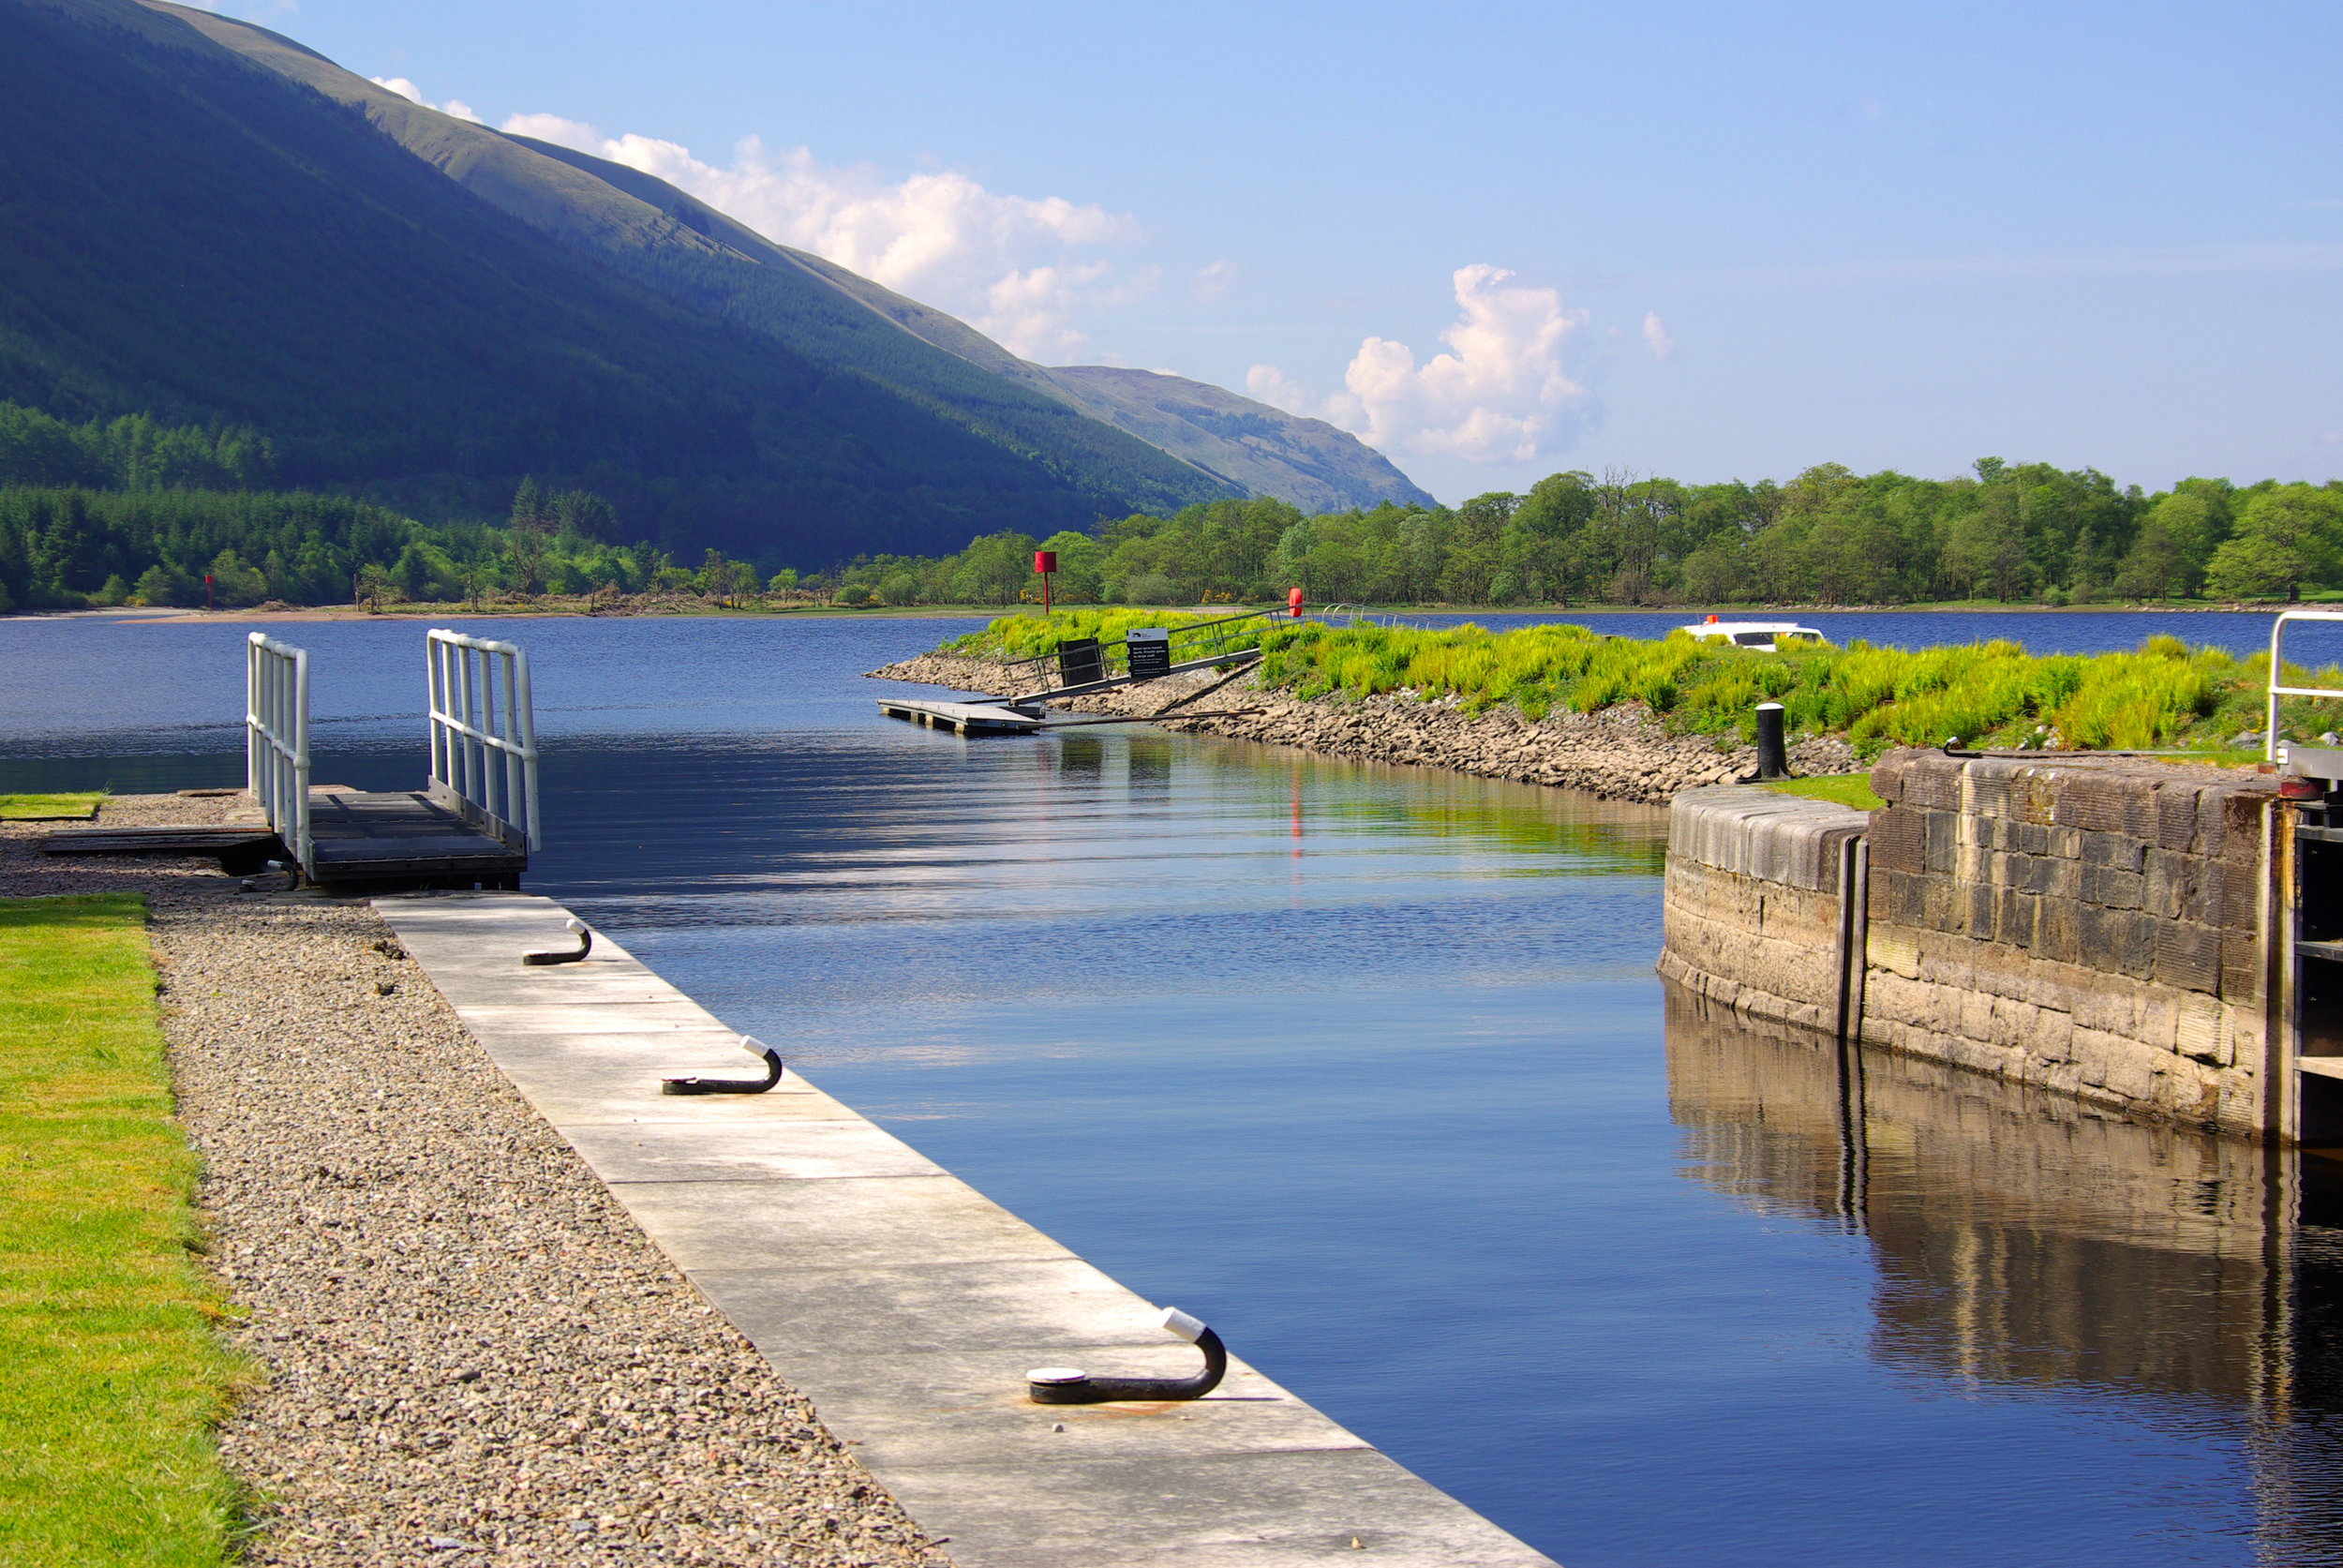 The eastern end of Loch Lochy as seen from the lower lock at Laggan Locks (2 minutes from Andorina's mooring)